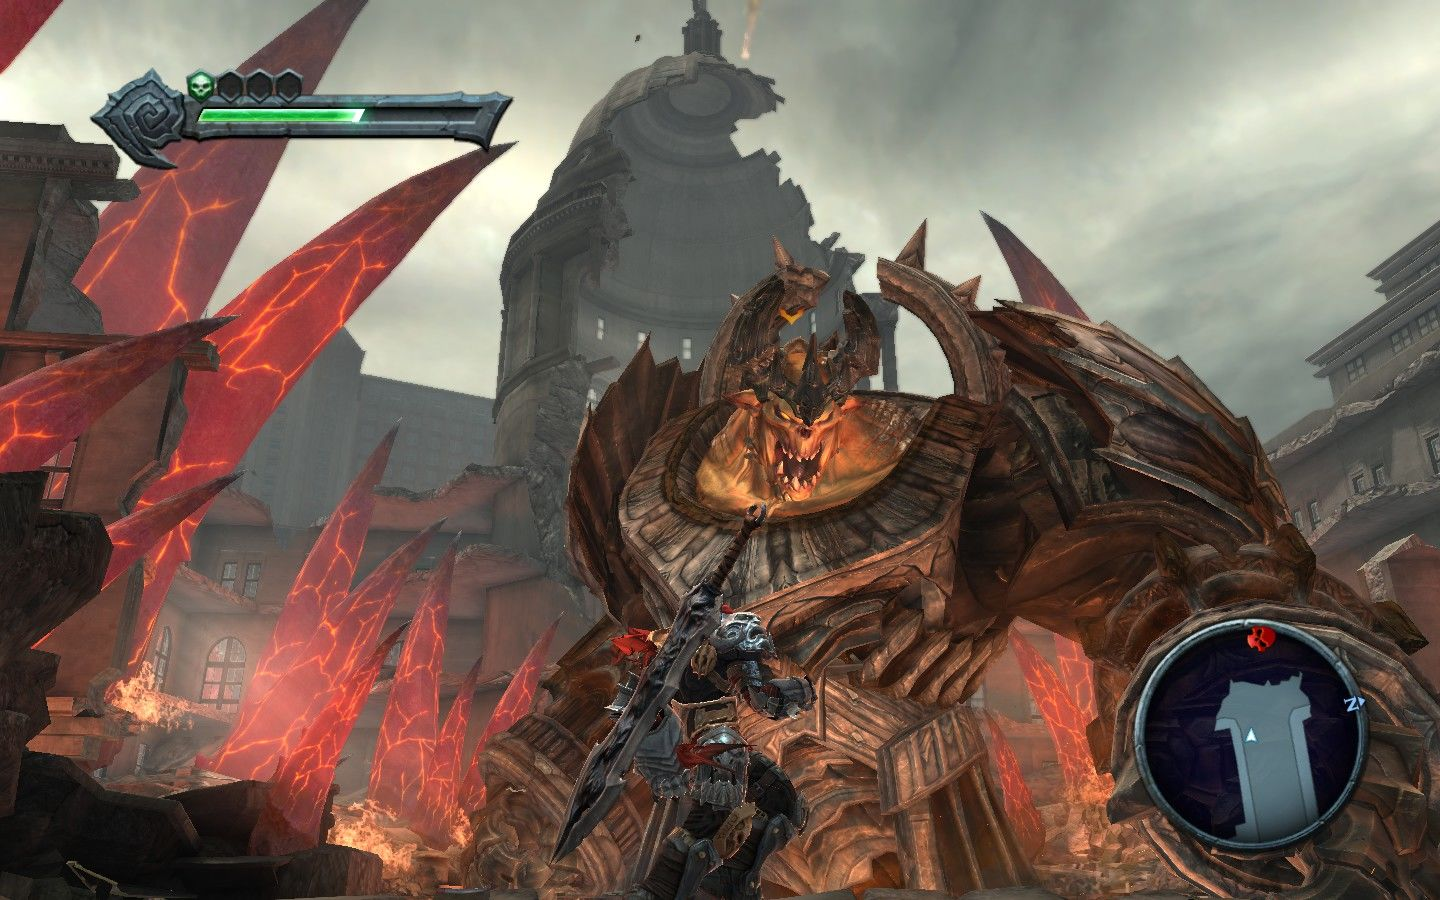 Darksiders Windows An early peek at the game's colossal bosses.